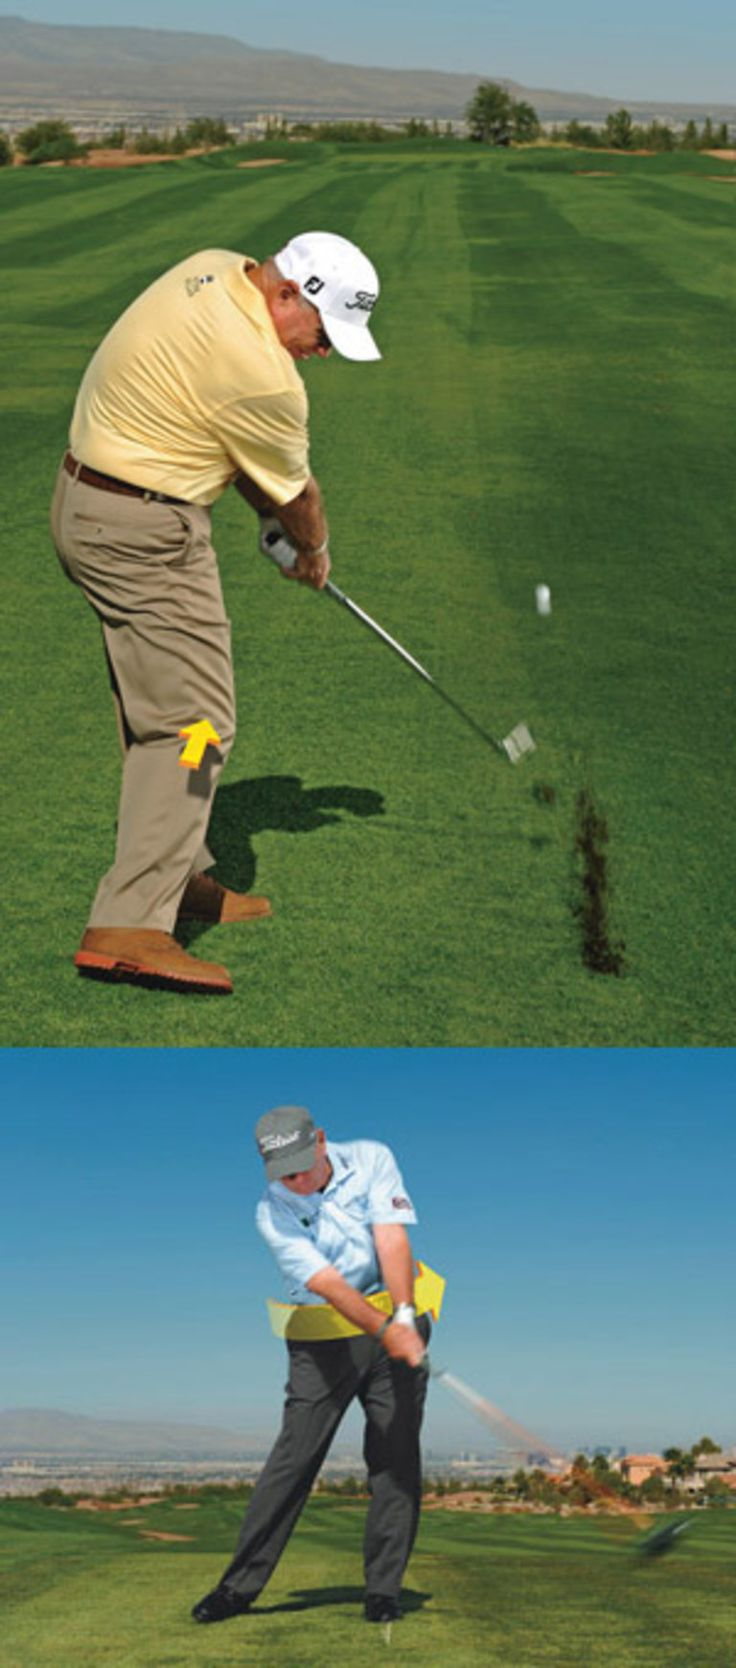 Golf Instruction and Golf Lessons using HD Golf 3D Simulators